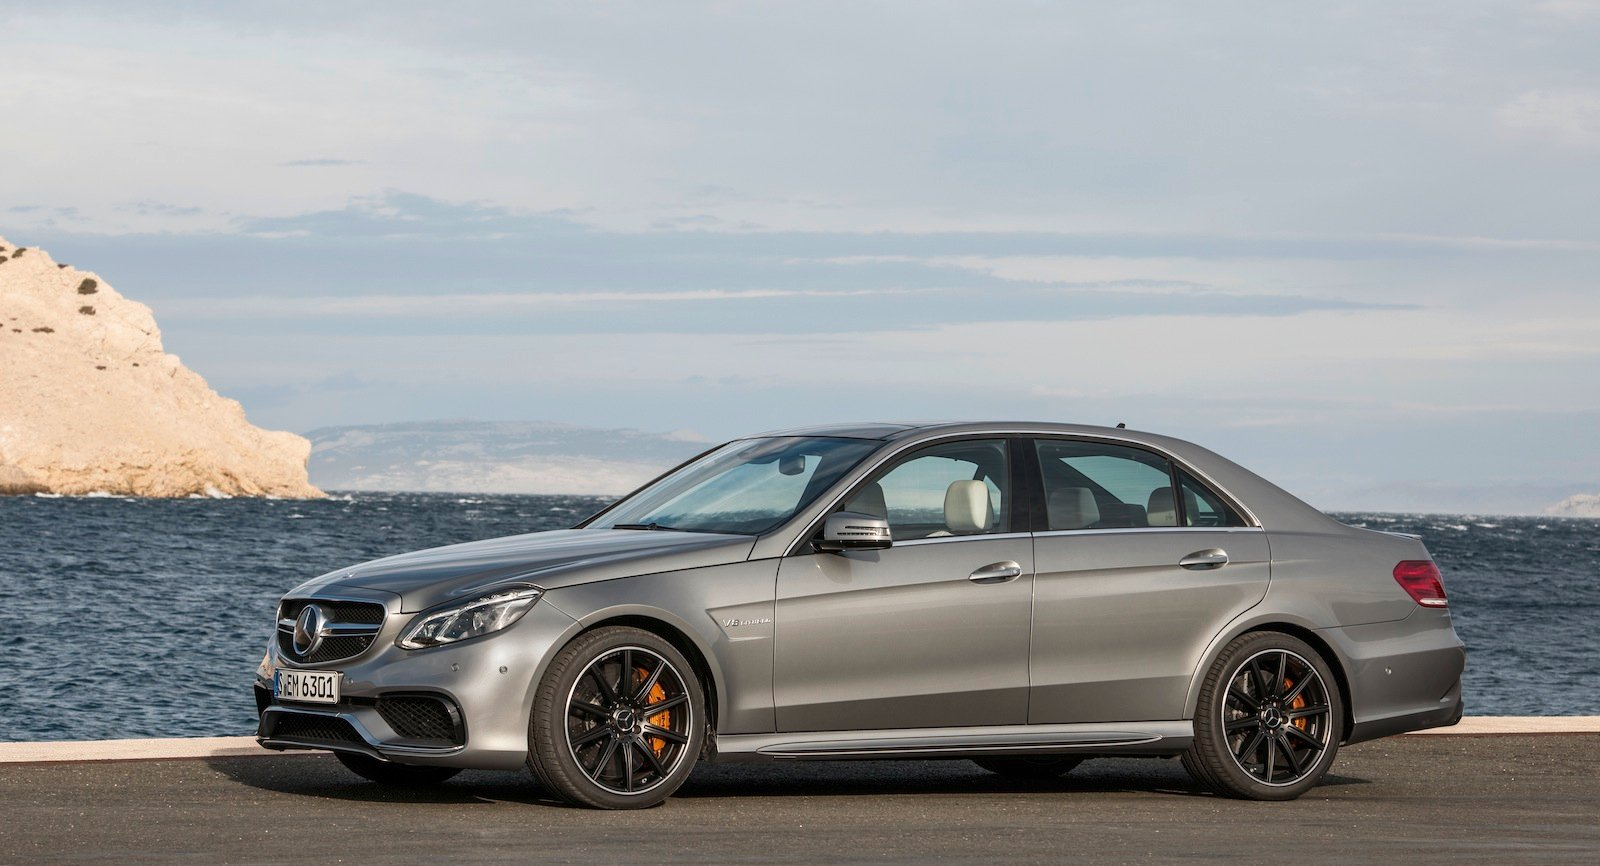 2013 mercedes benz e63 amg 0 100km h awd monster revealed photos 1 of 30. Black Bedroom Furniture Sets. Home Design Ideas